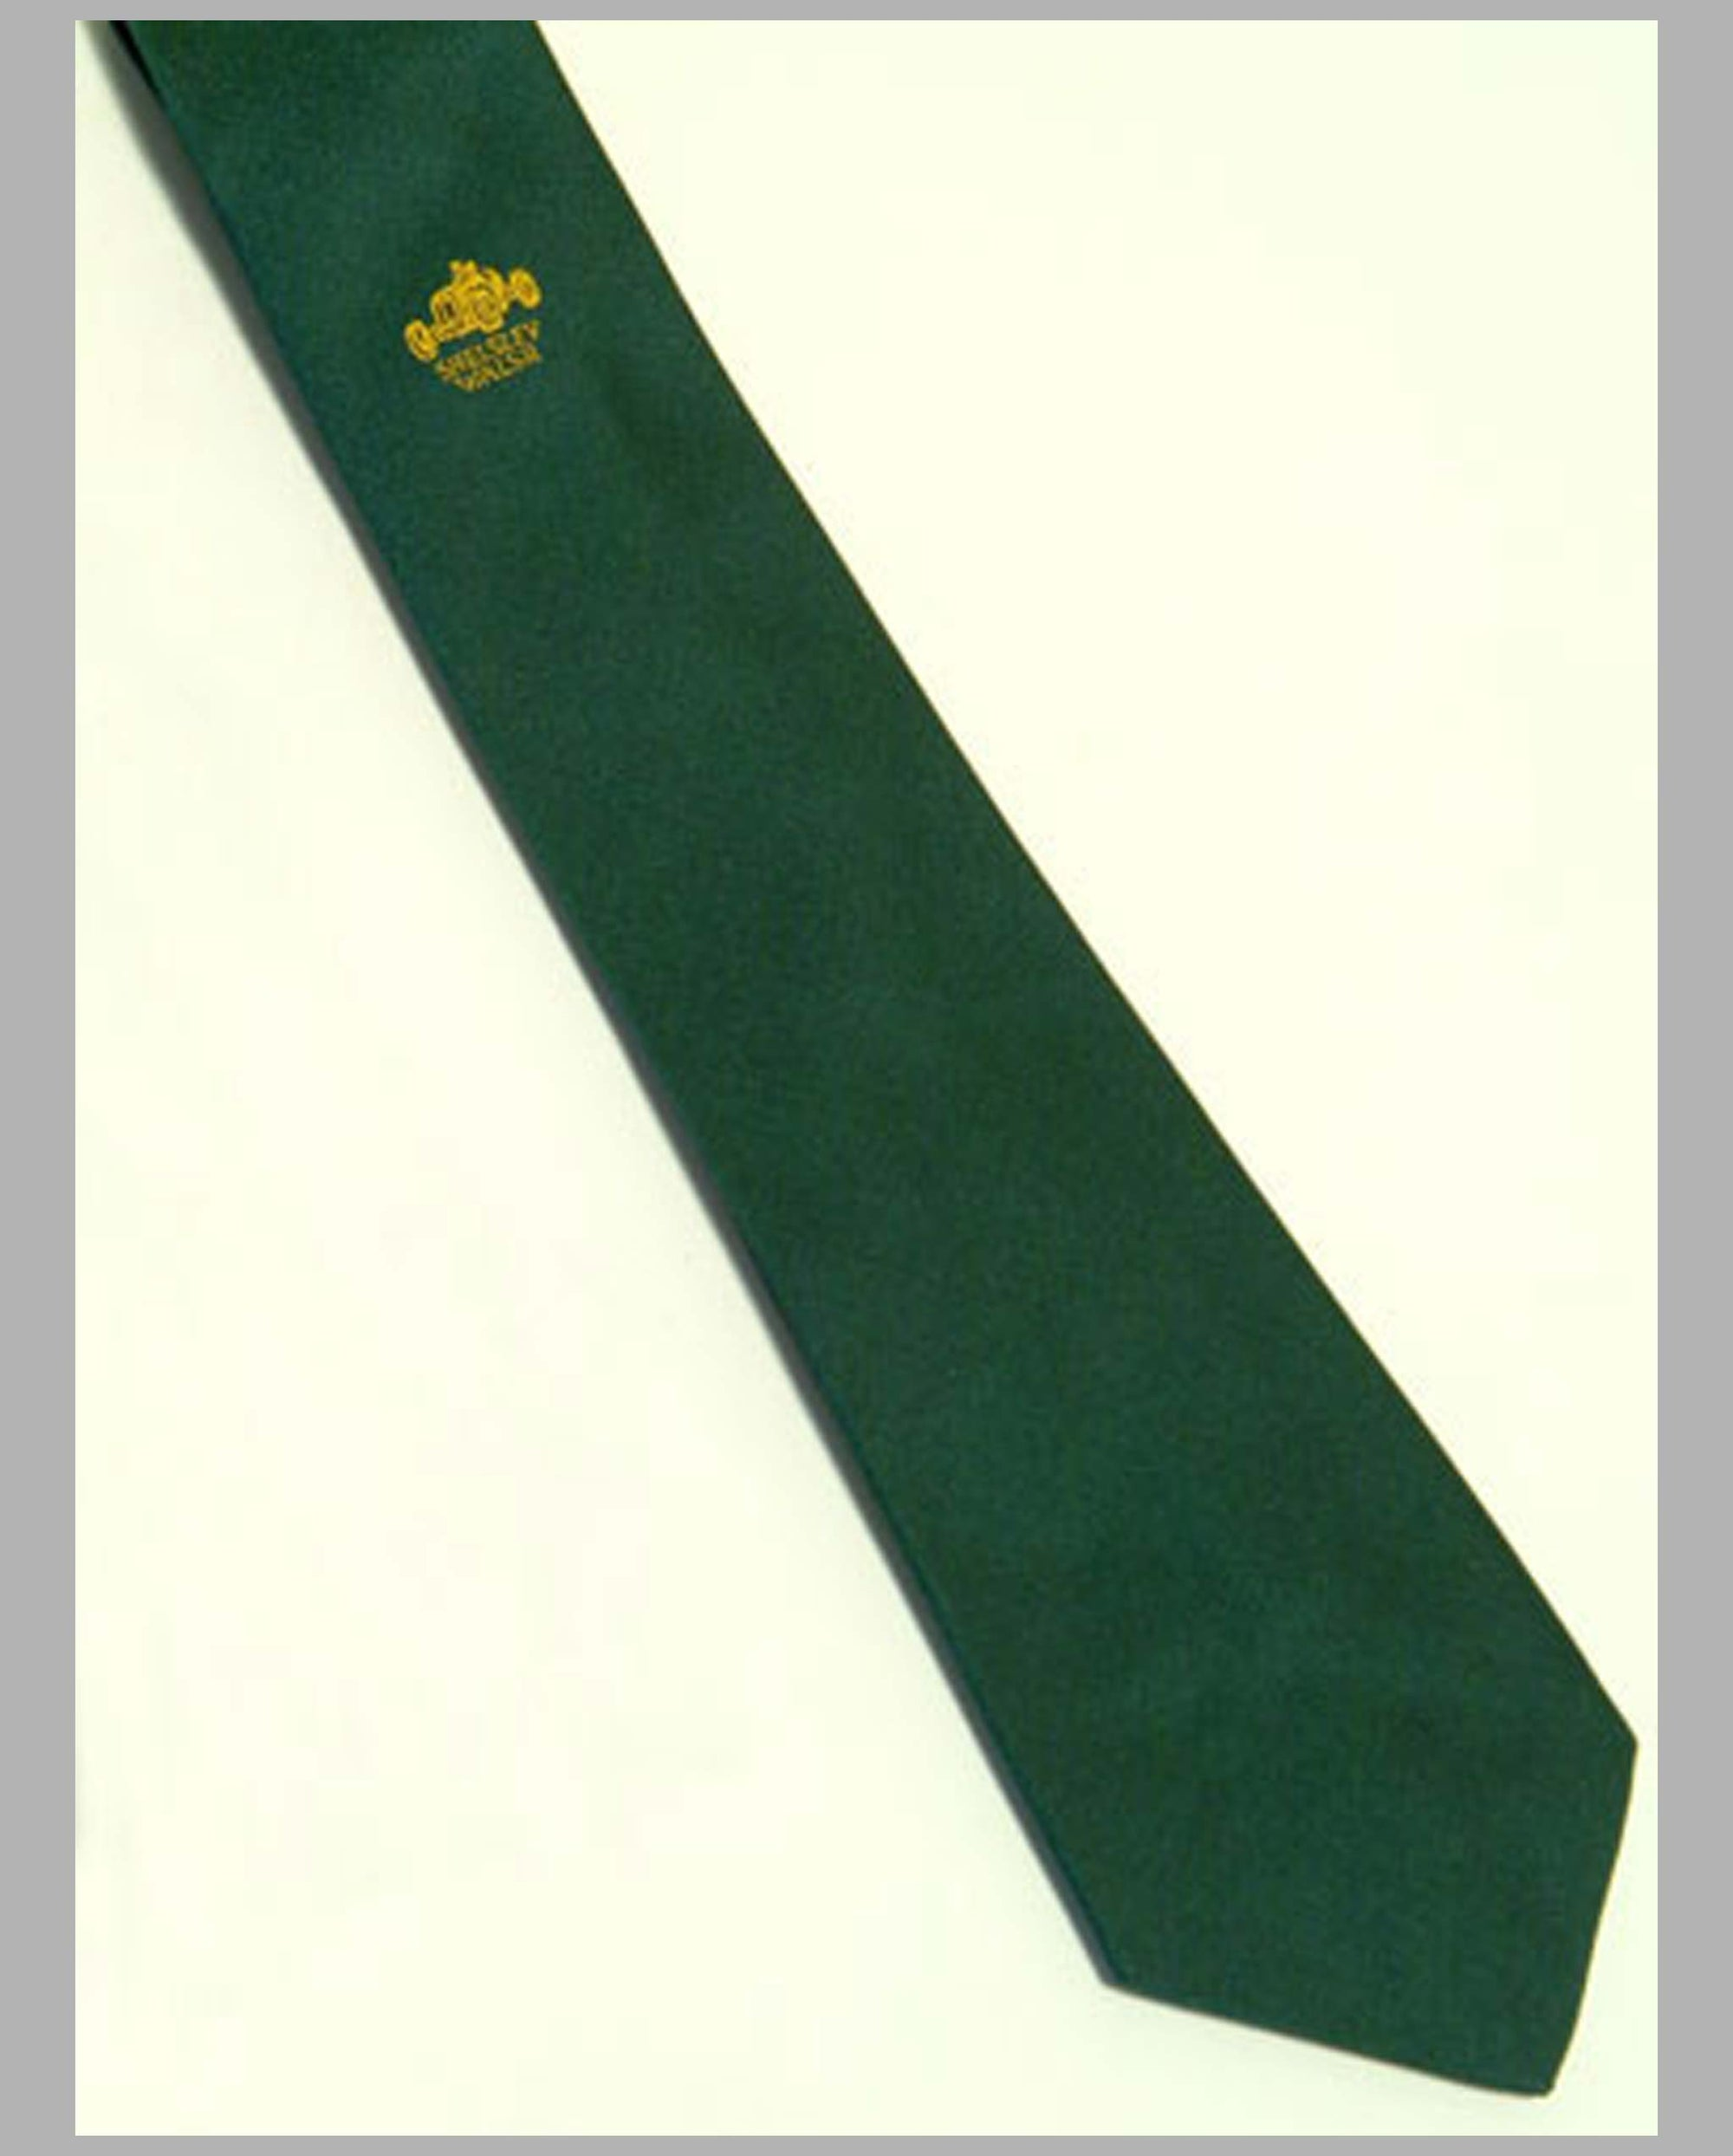 Shelsley Walsh necktie